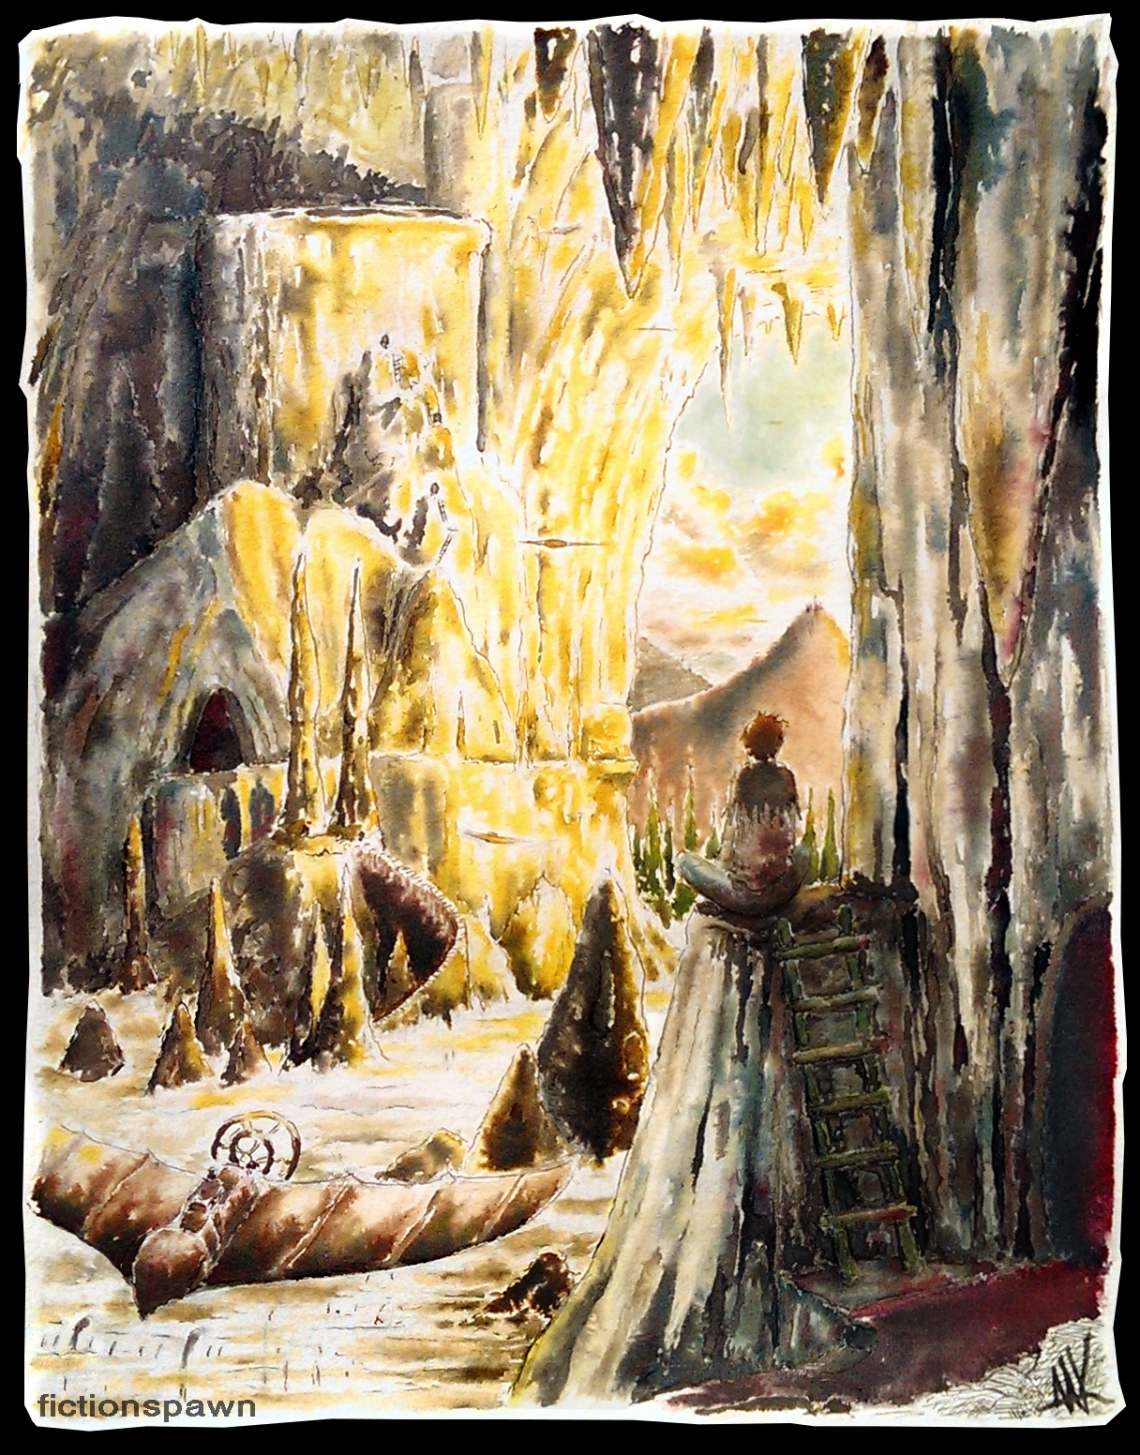 Swift planes in a giant cave. Aak fictionspawn